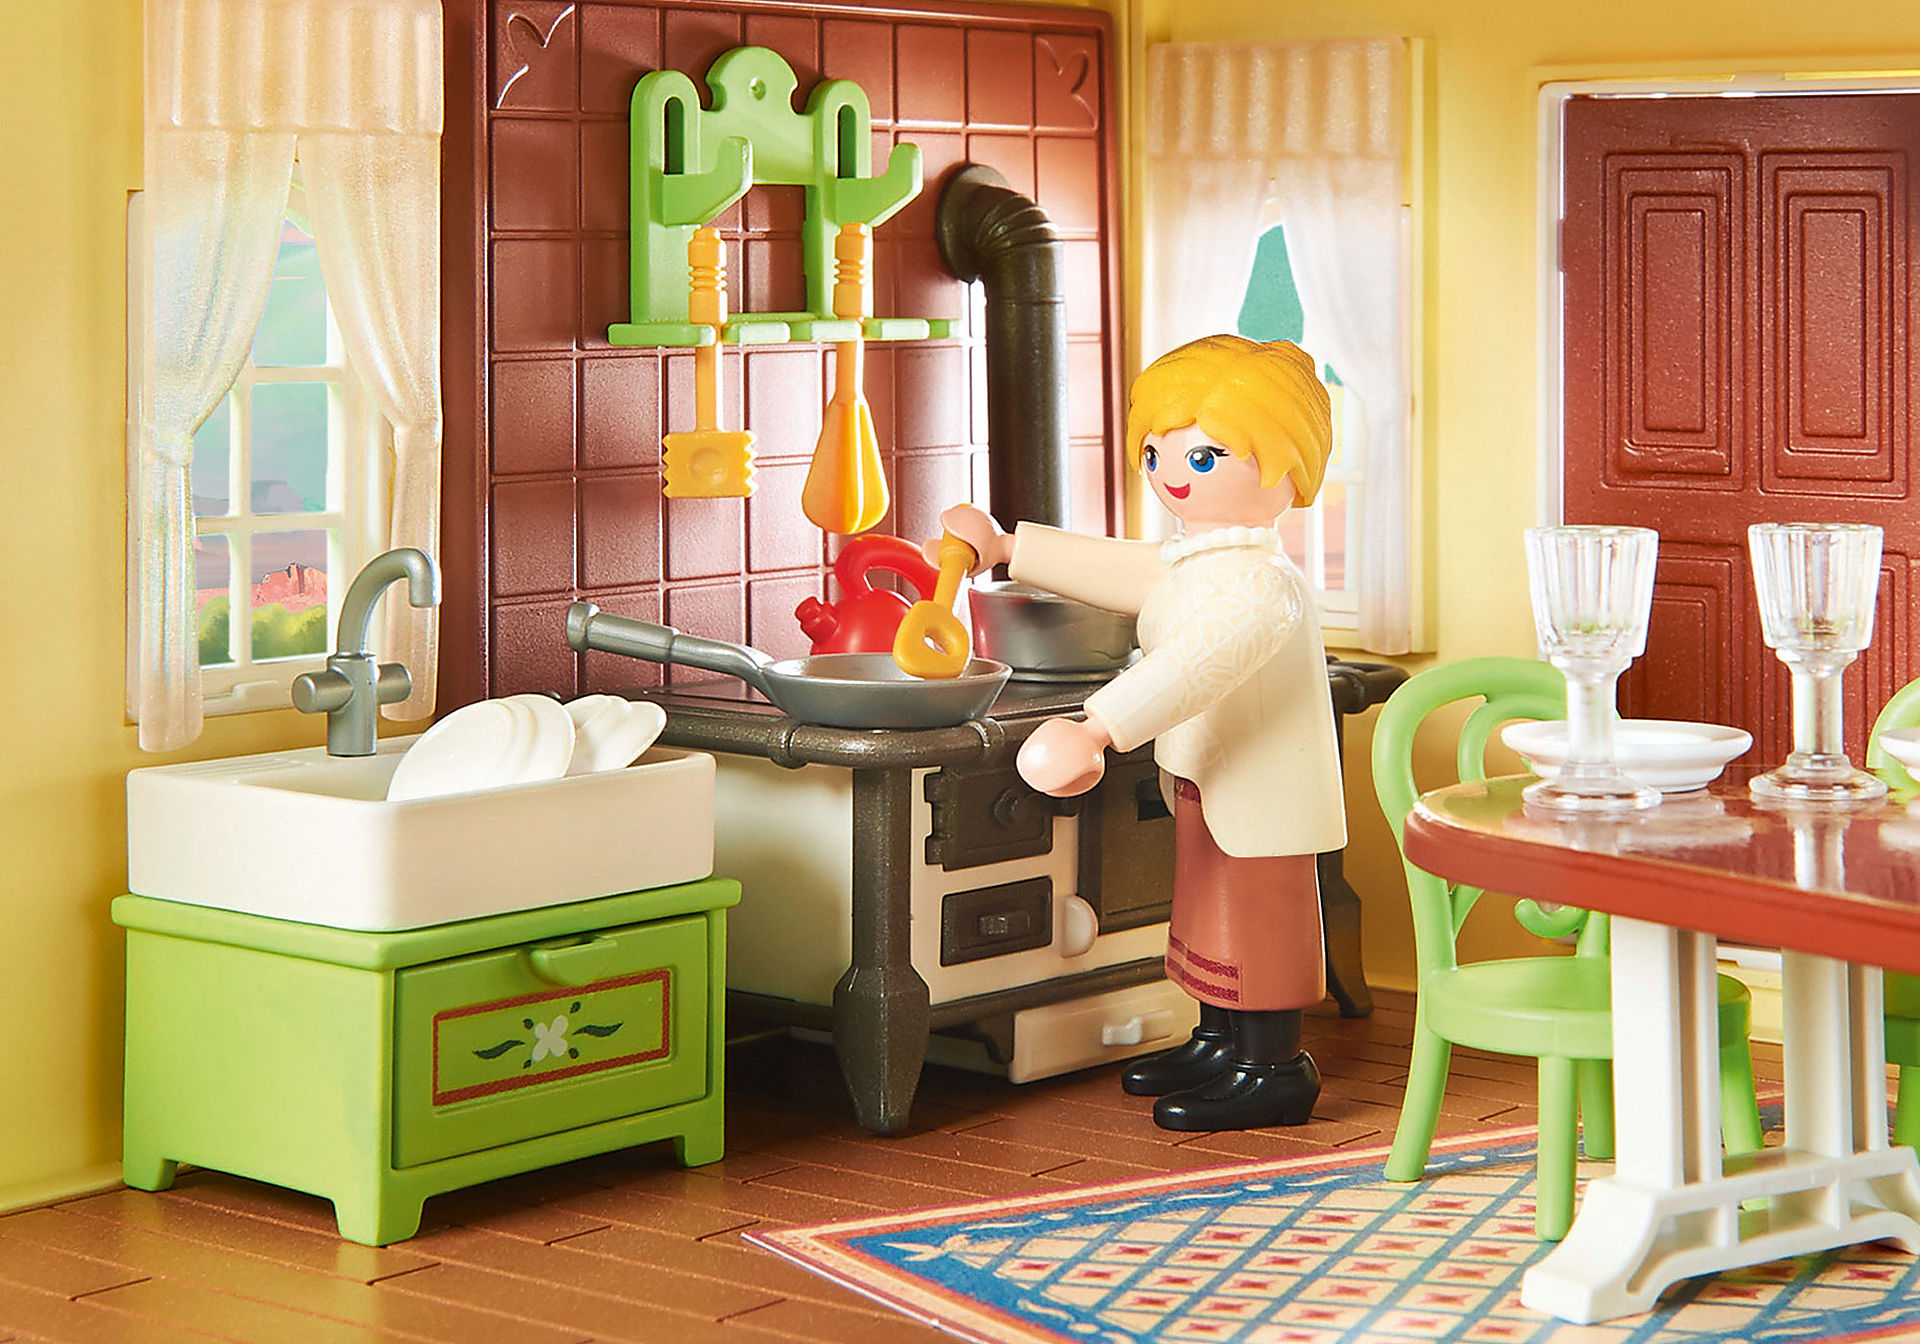 http://media.playmobil.com/i/playmobil/9475_product_extra1/Το σπίτι της Λάκυ